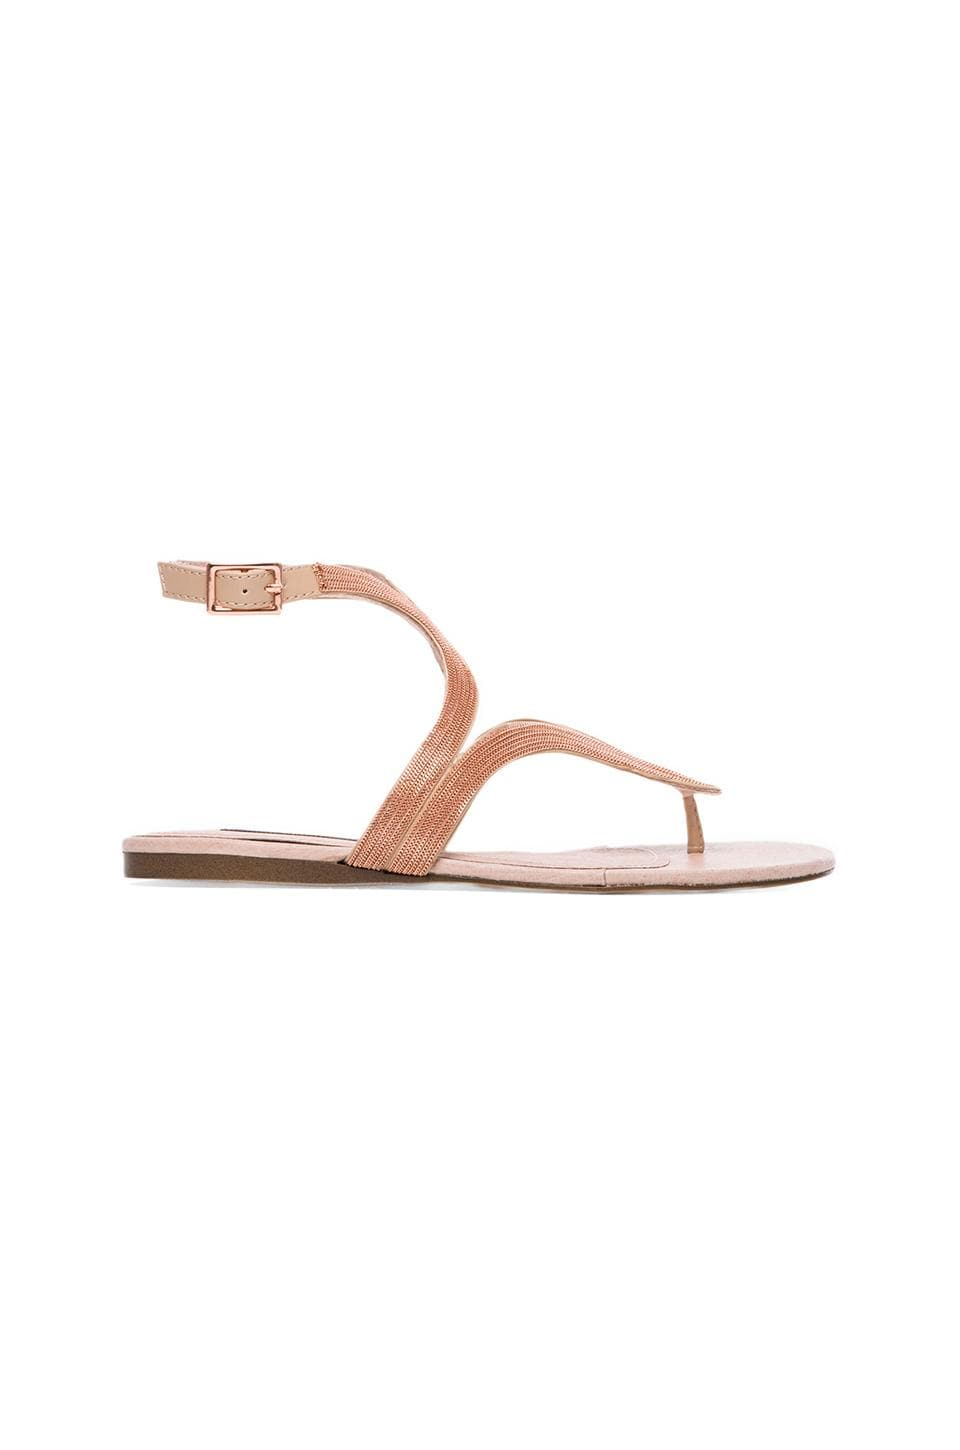 Steven Resorts Sandal in Blush Multi